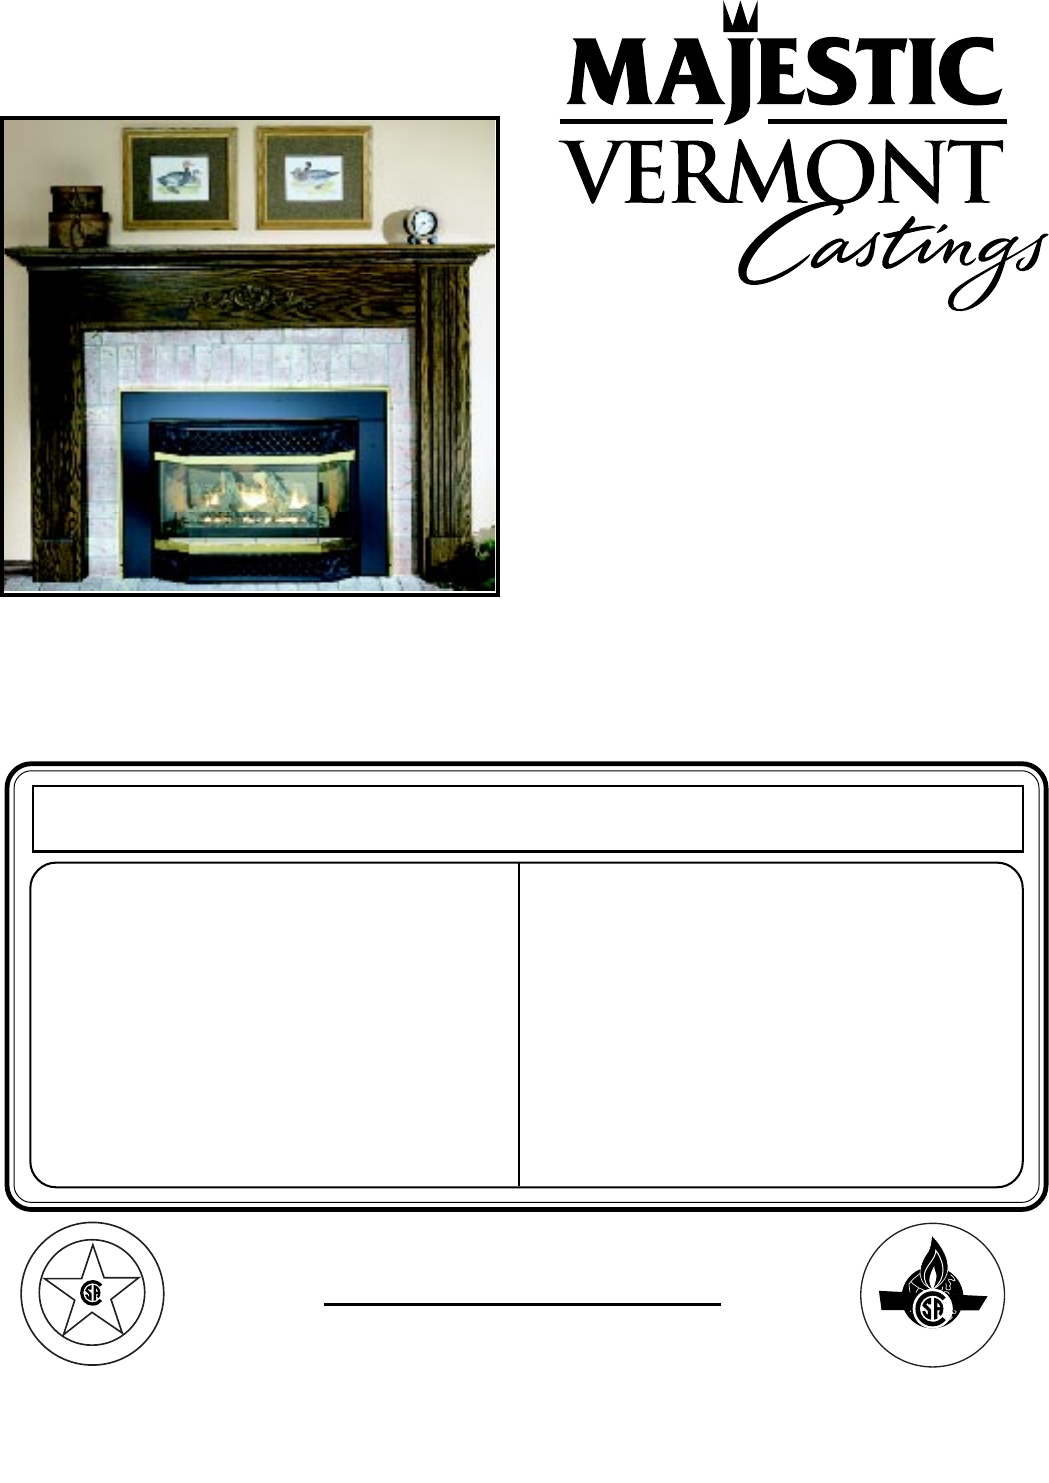 vermont casting indoor fireplace rhe32 user guide manualsonline com